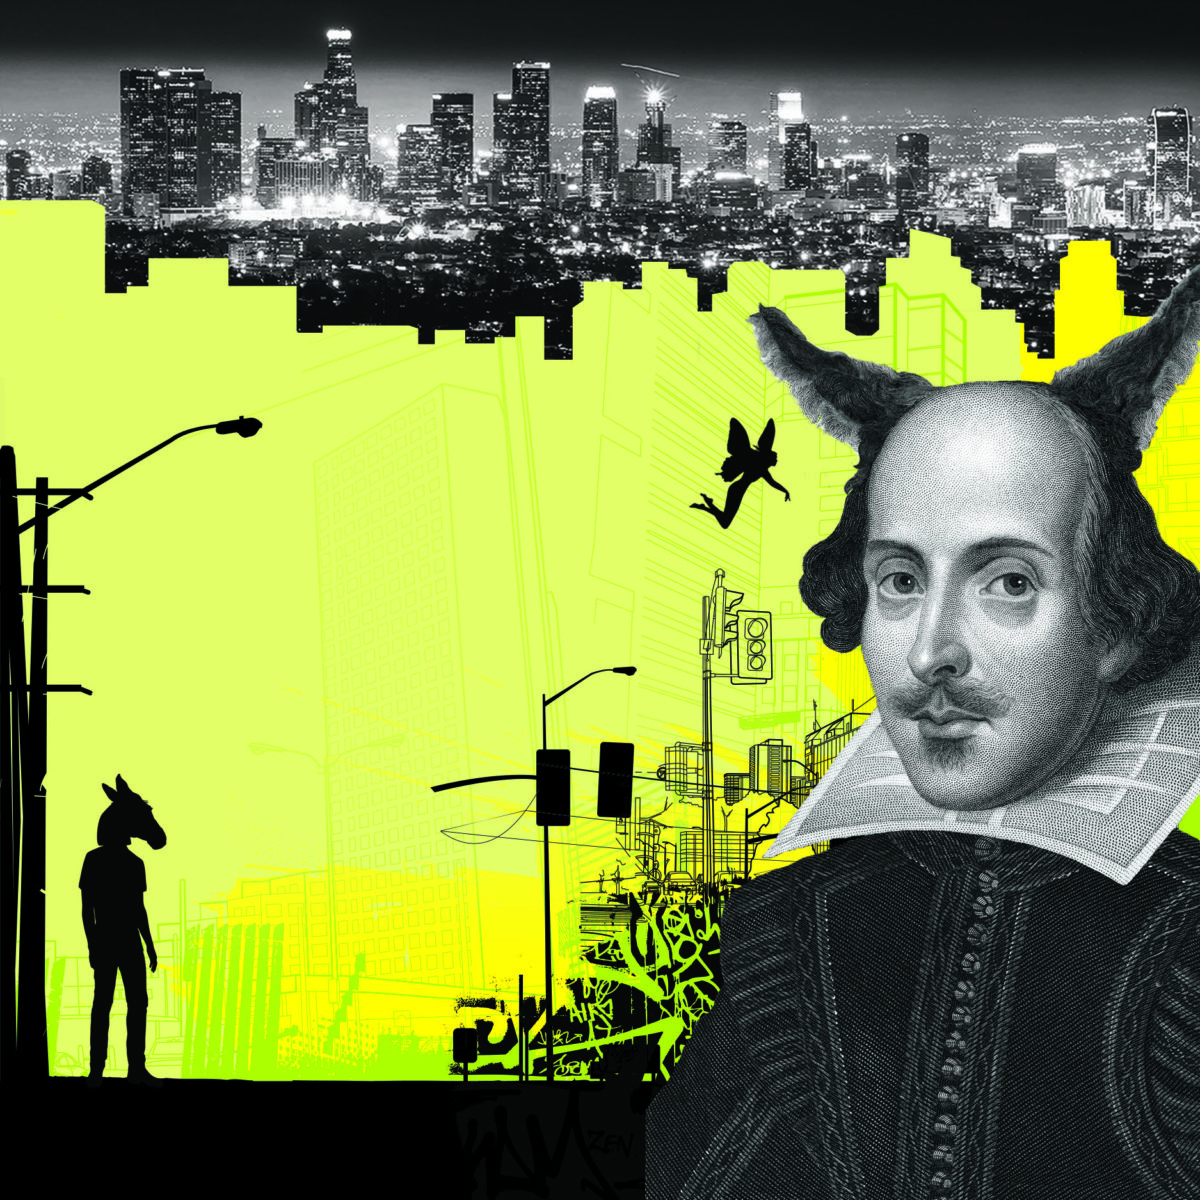 Illustrative promotional image for A Midsummer Night's Dream with cityscape and picture of Shakespeare.